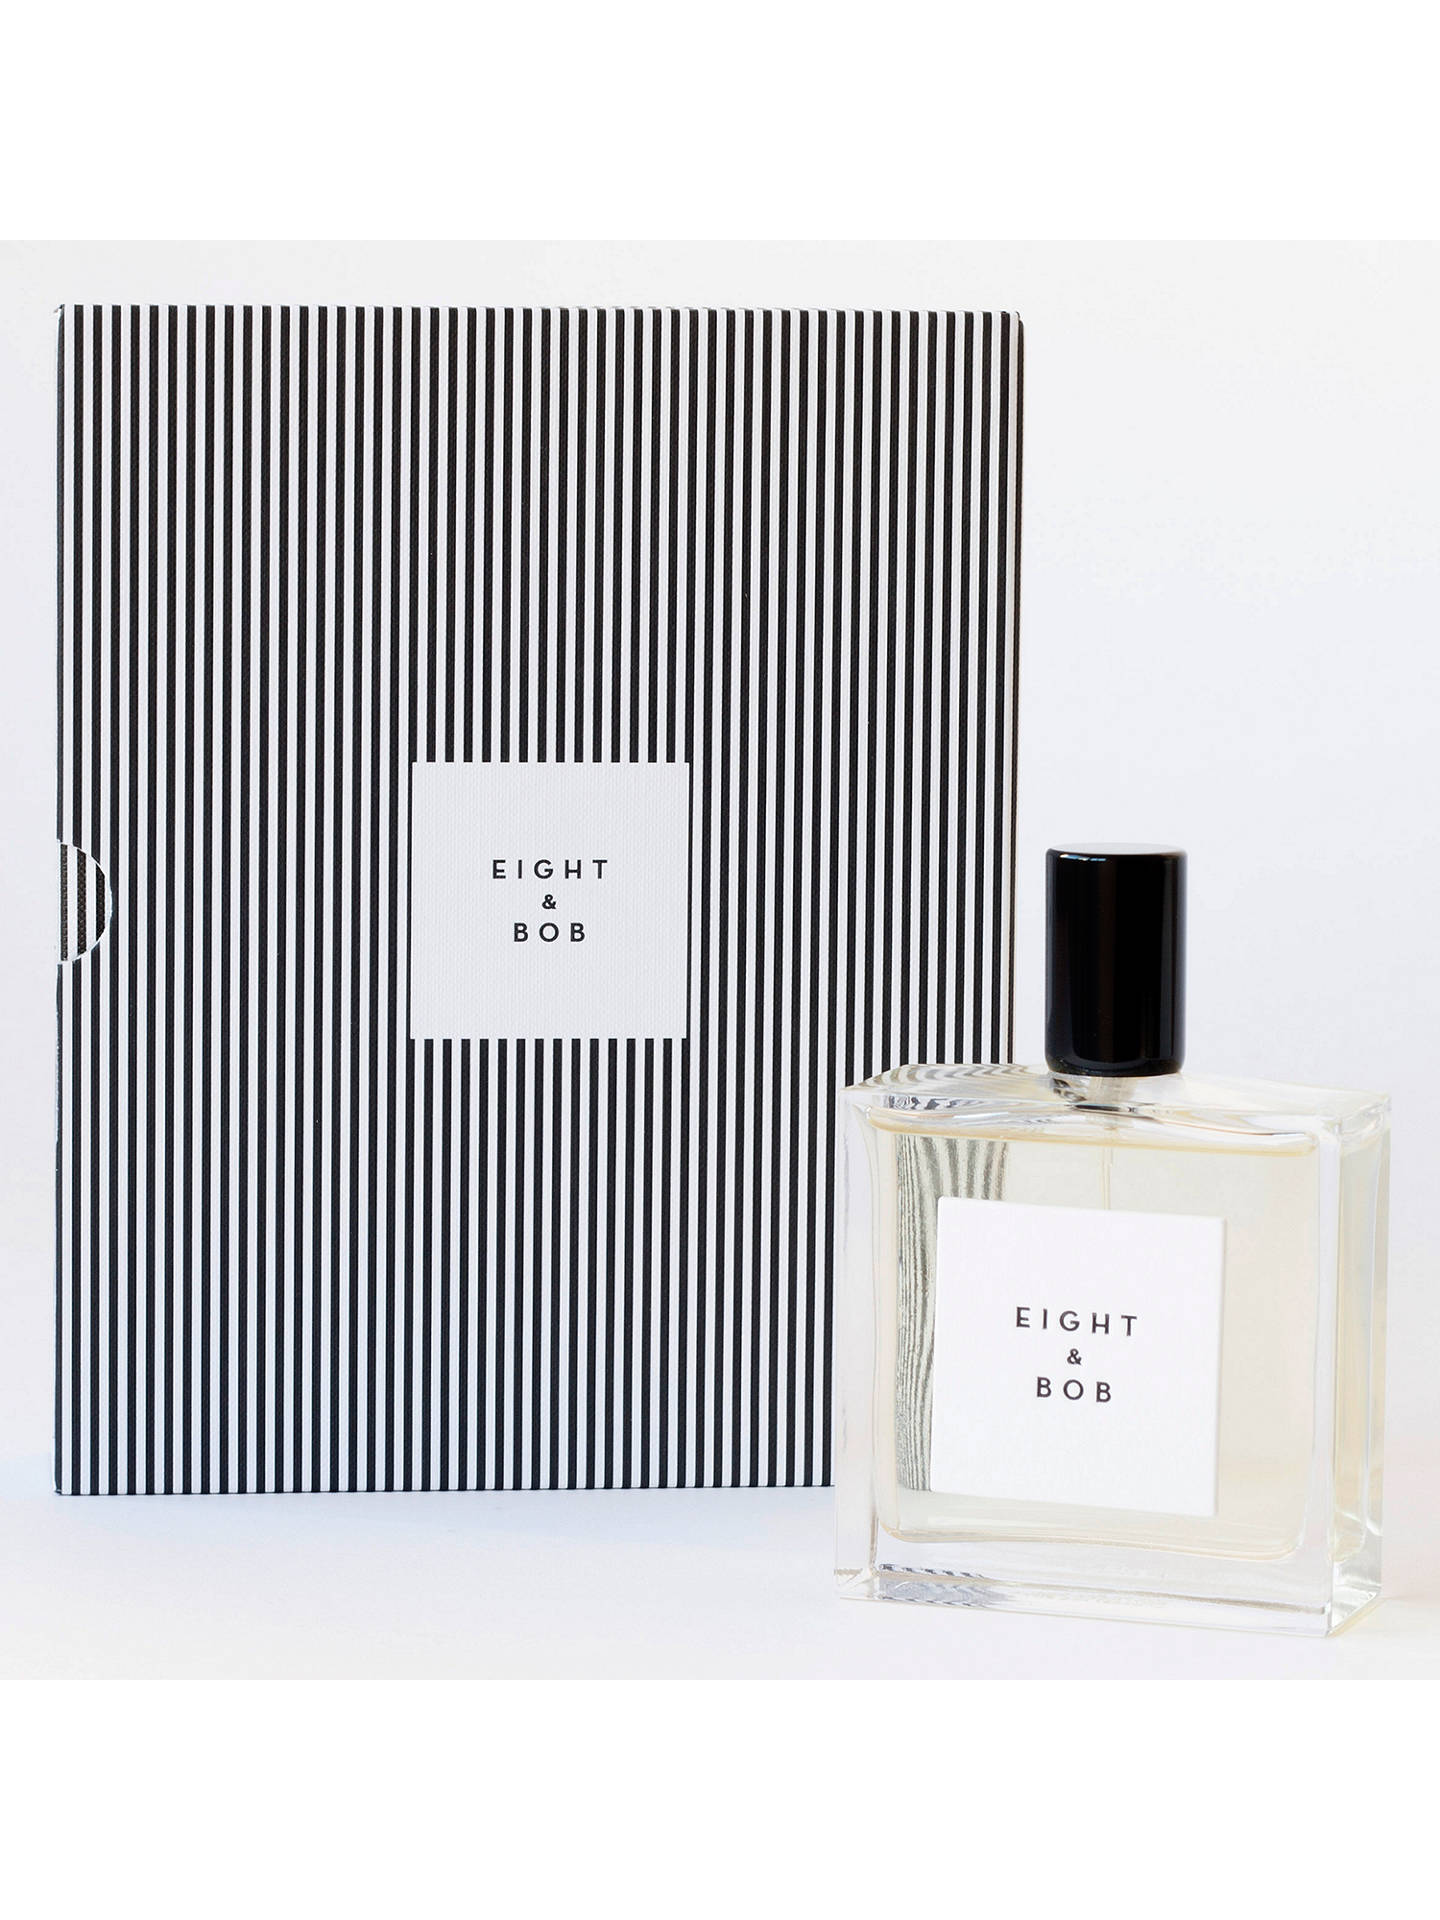 Eight Bob Original Eau De Parfum In Book 100ml At John Lewis